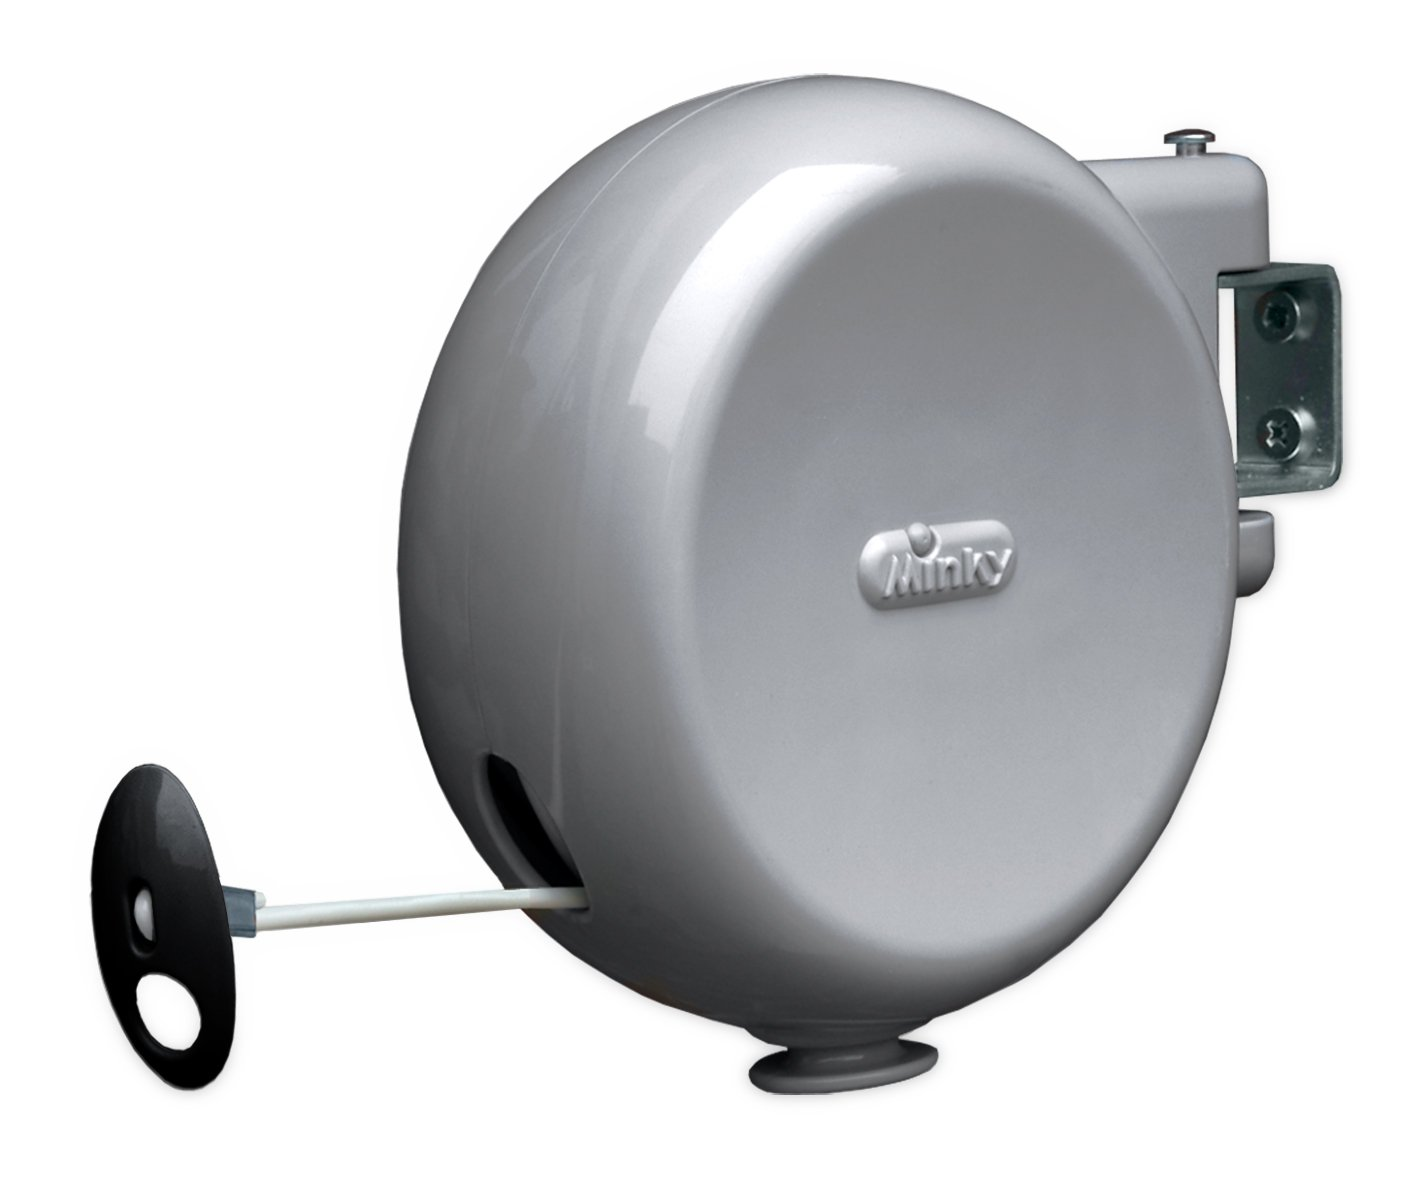 minky-retractable-reel-outdoor-dryer-49-feet-line-drying-space